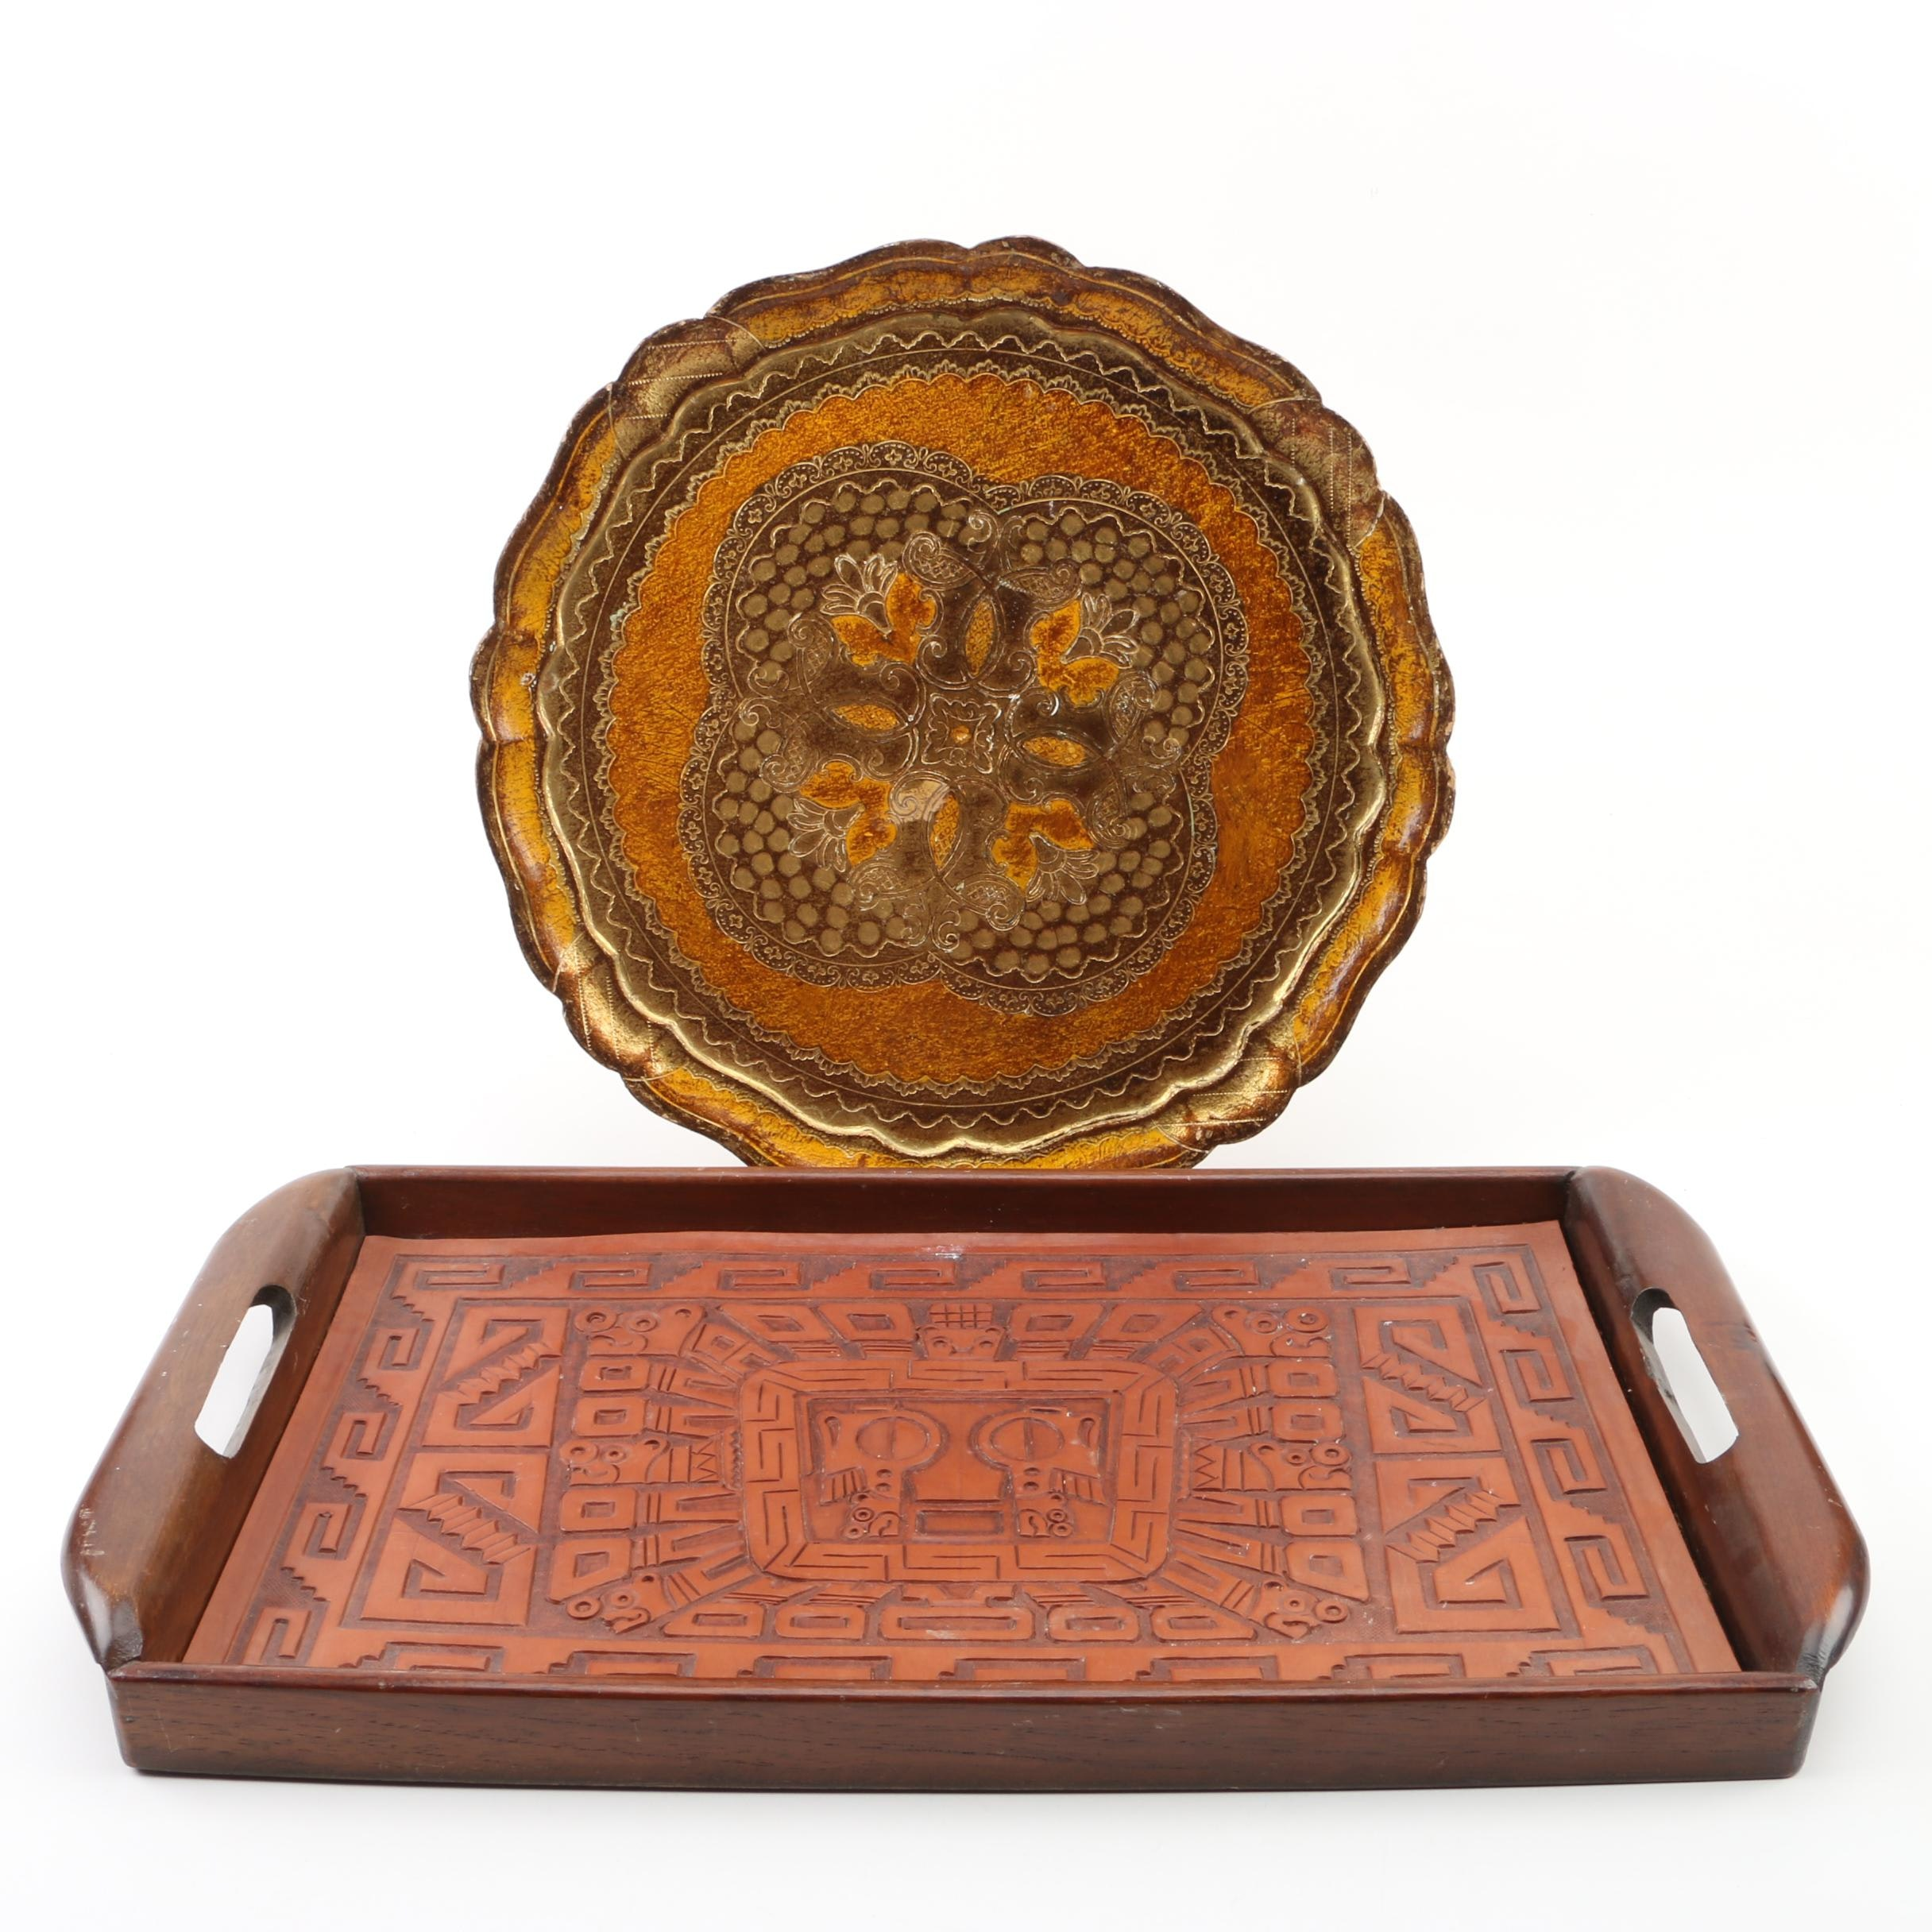 Peruvian and Florentine Style Serving Trays